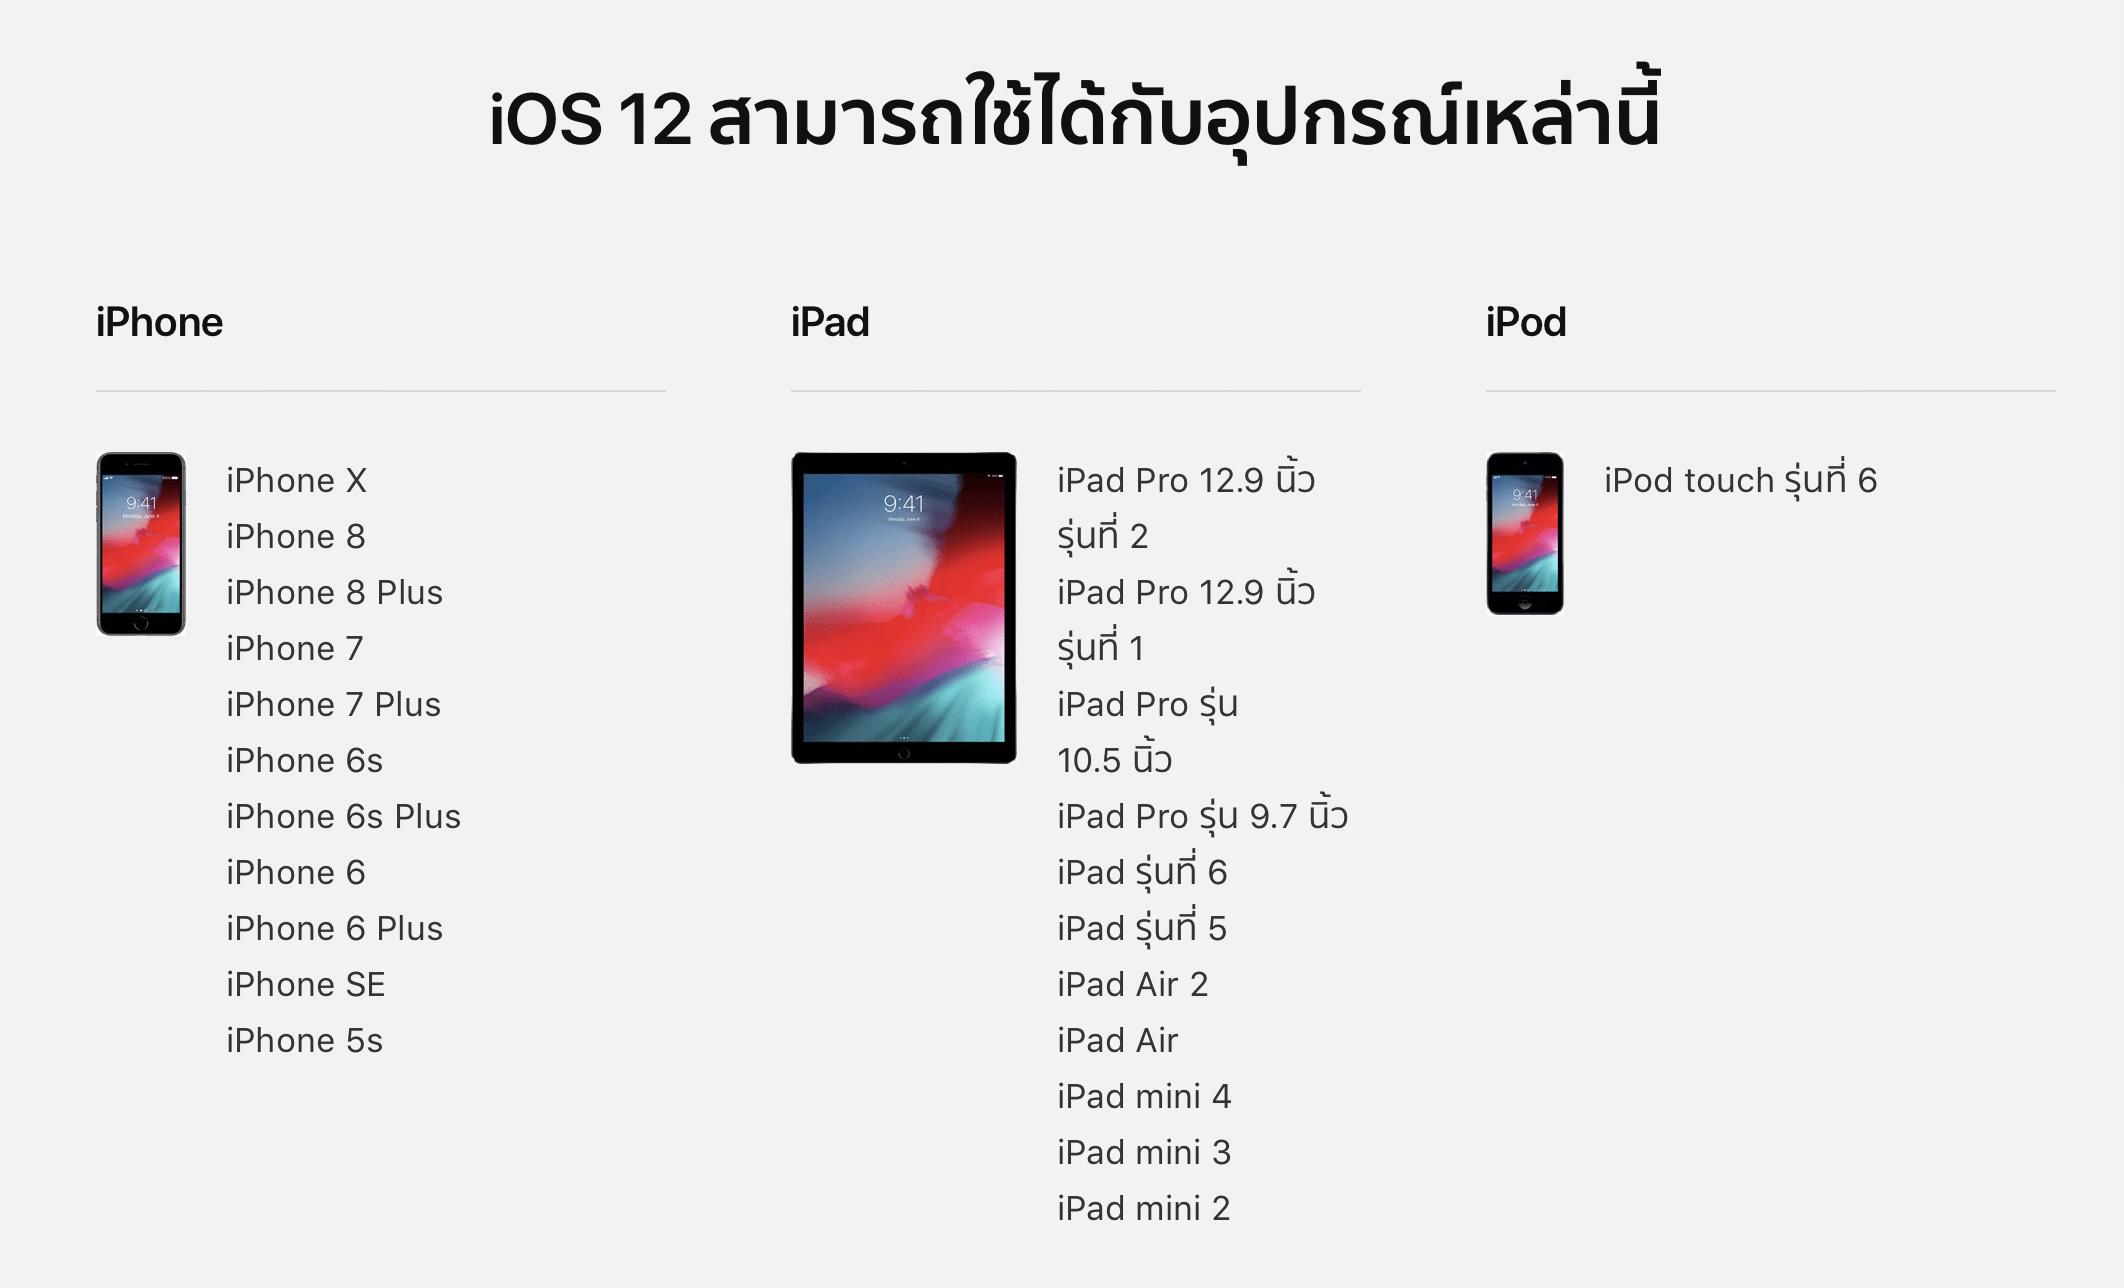 ios 12 compatibility